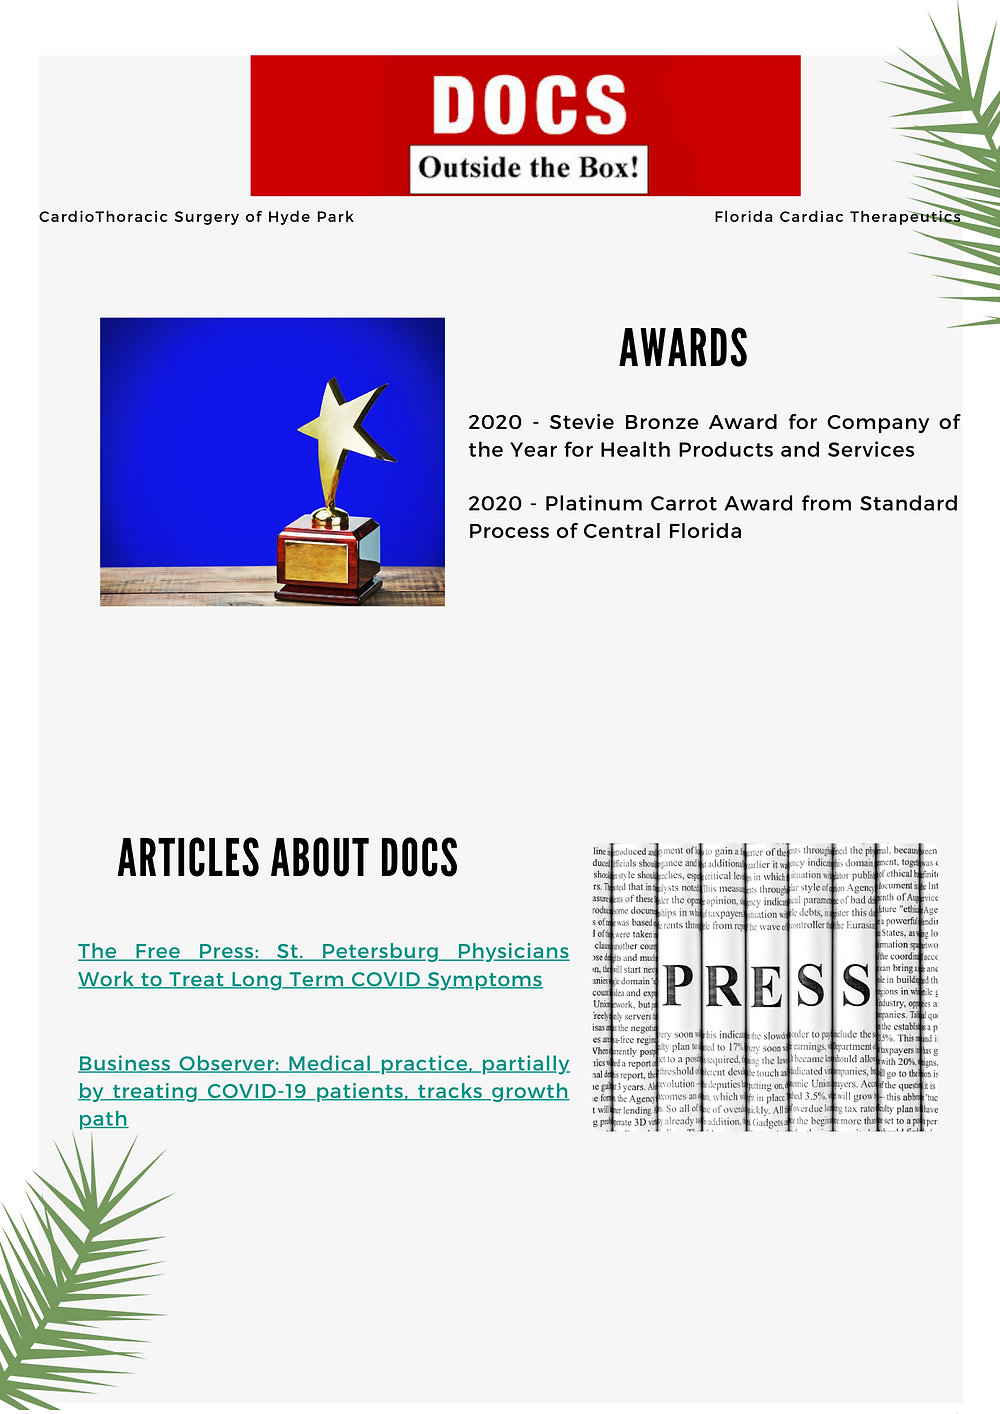 Docs won two awards last year, and articles and mentions of DOCS  with links.